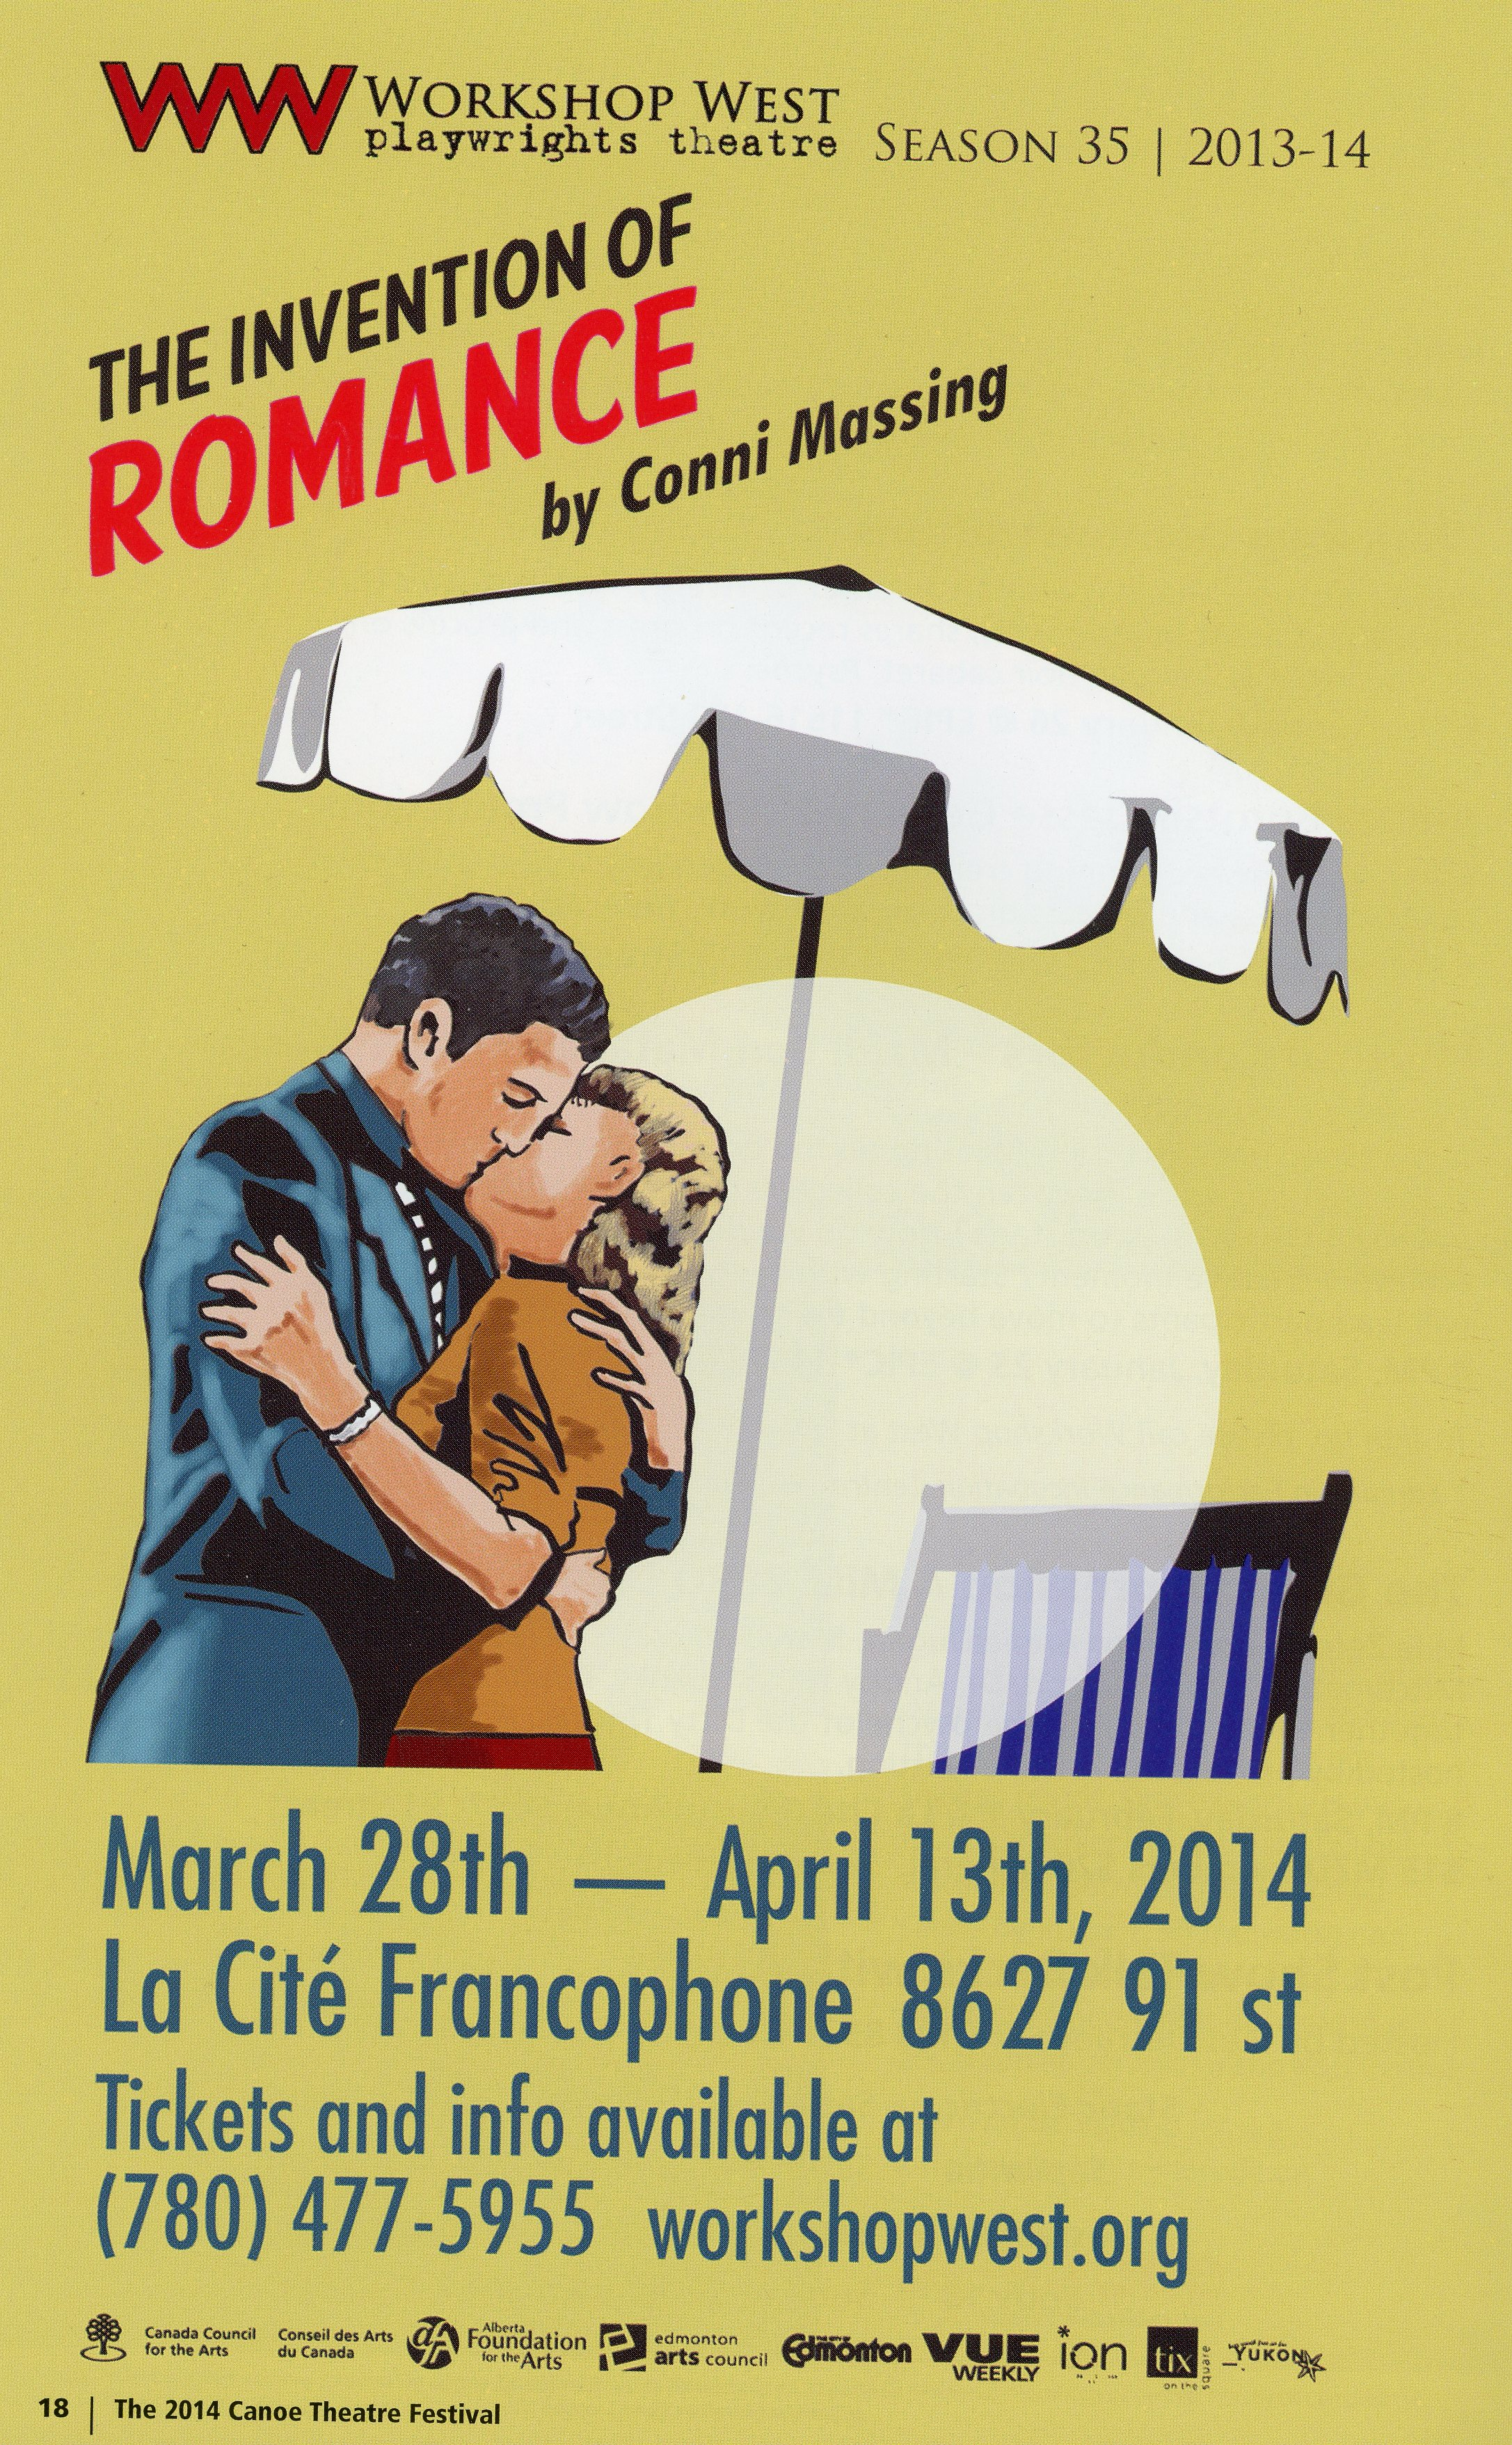 The Canoe Theatre Festival (January 2014)-Production Information-The Invention of Romance_JPEG.jpg